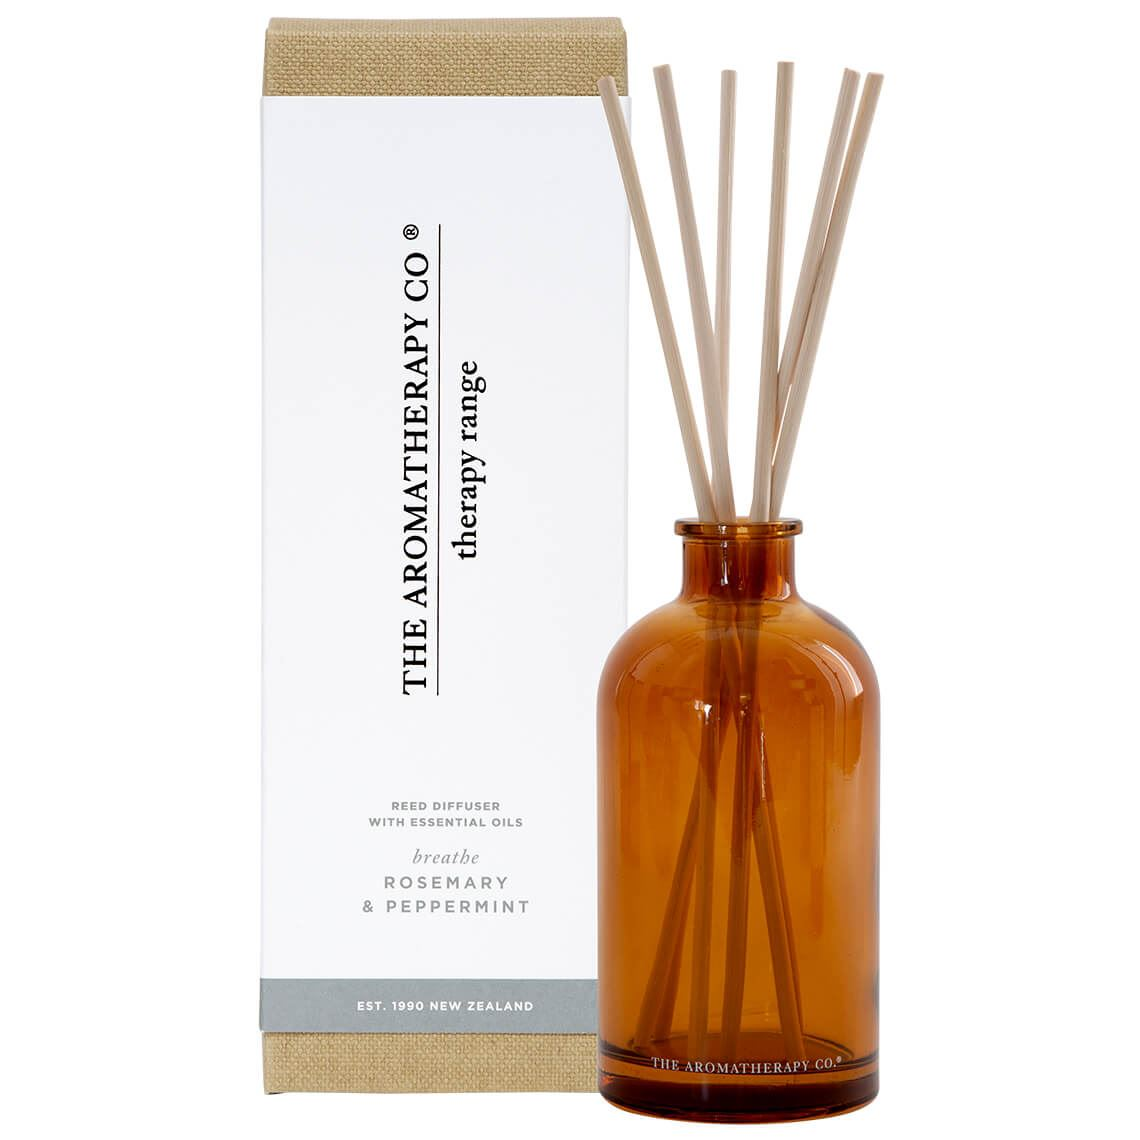 Therapy Diffuser Rosemary And Peppermint Size 250 ml in Rosemary/Peppermint Freedom